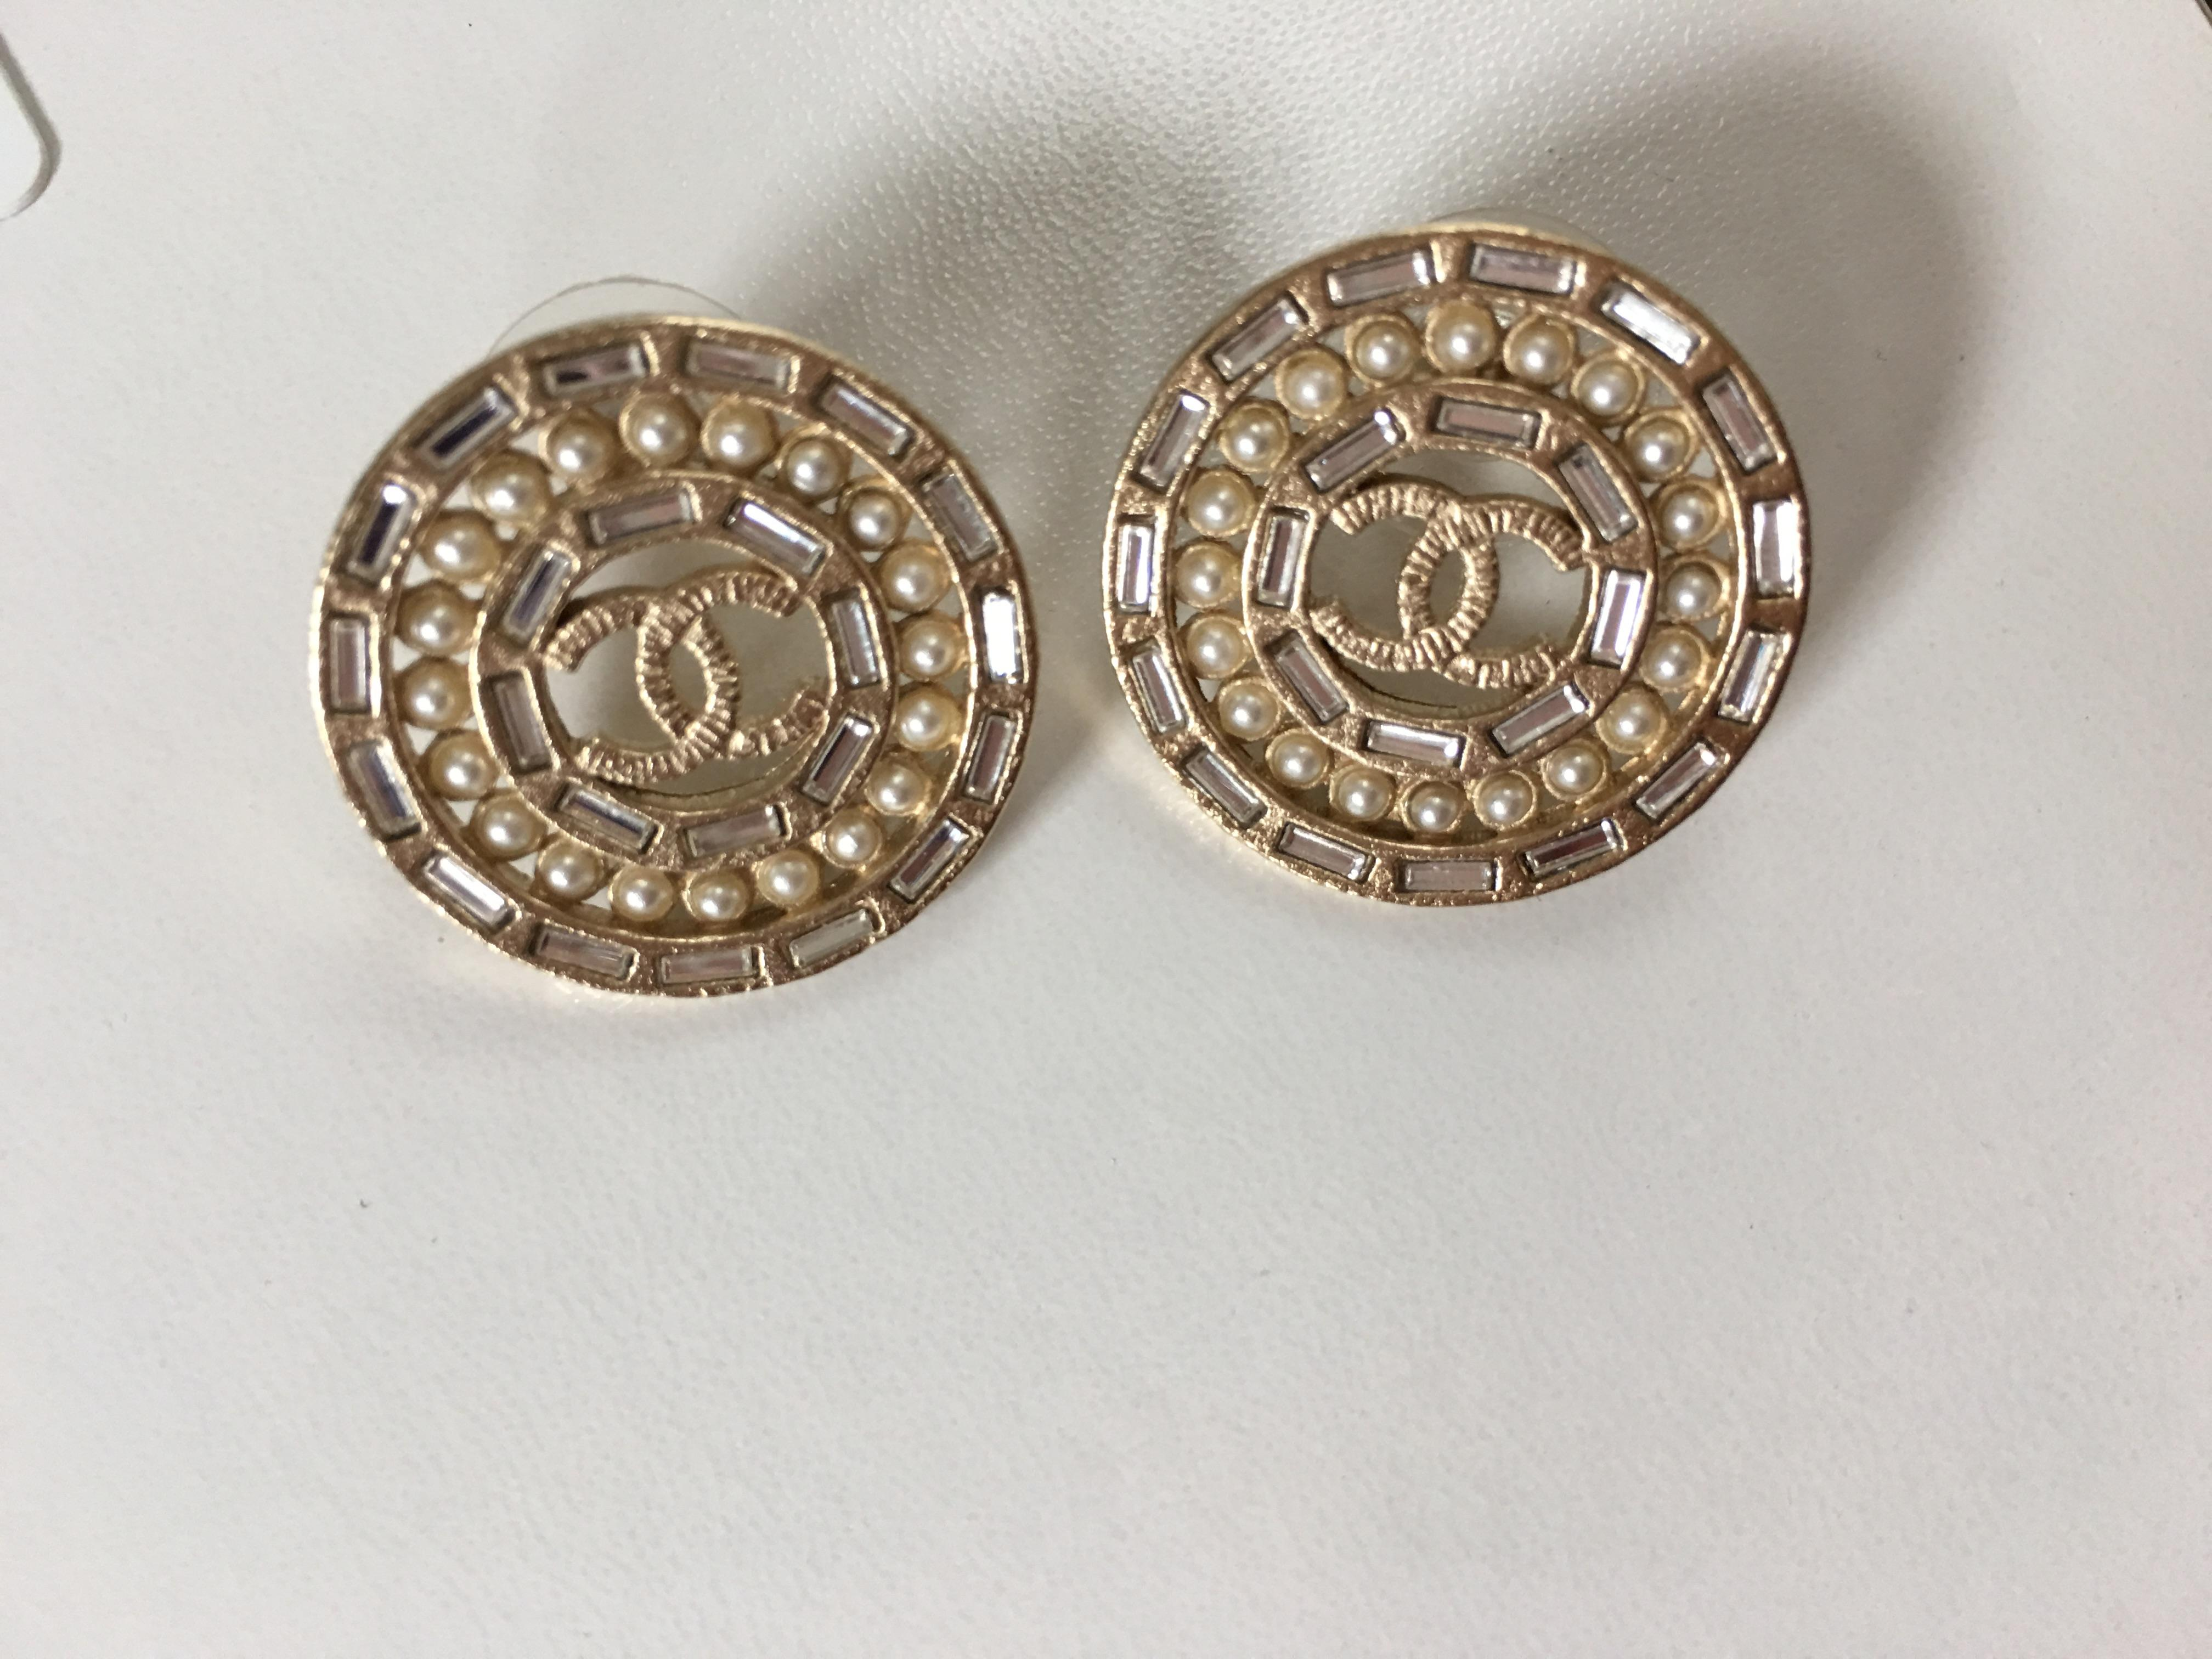 Chanel Buy Now Pay Later 2016 0027 Crystal Pearl Wow Theyre Simply